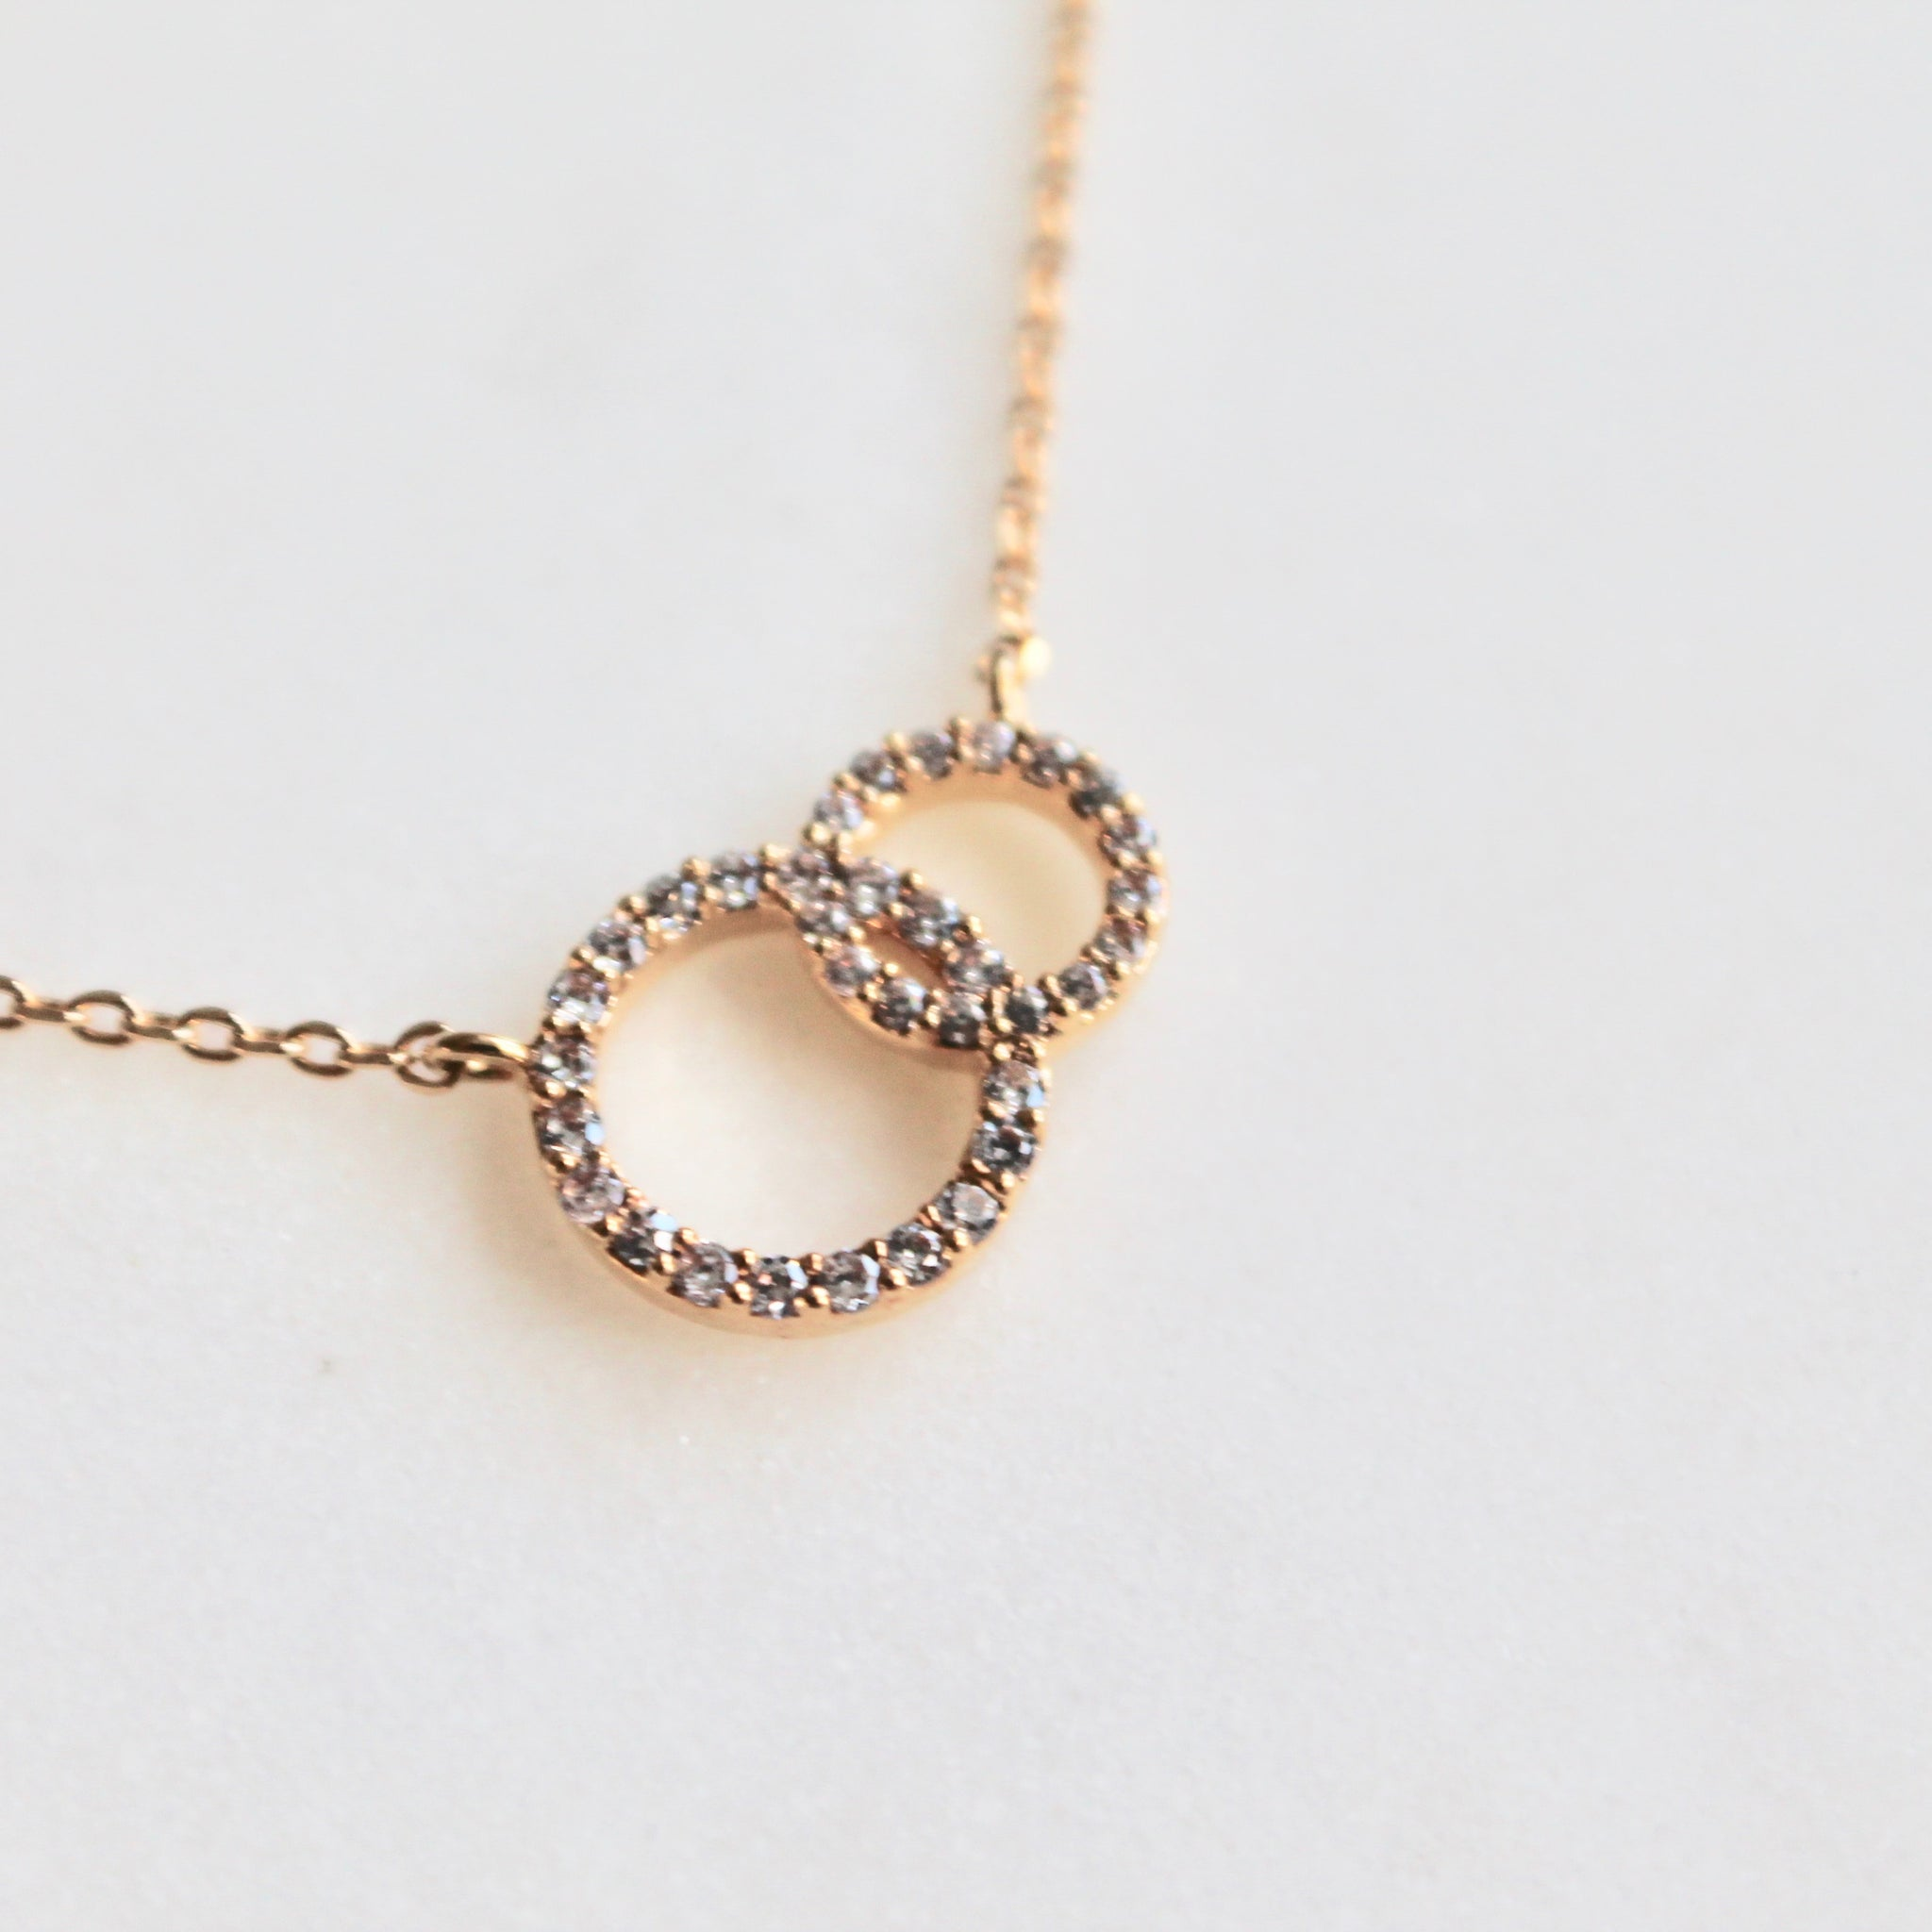 Mother daughter necklace - Lily Lough Jewelry